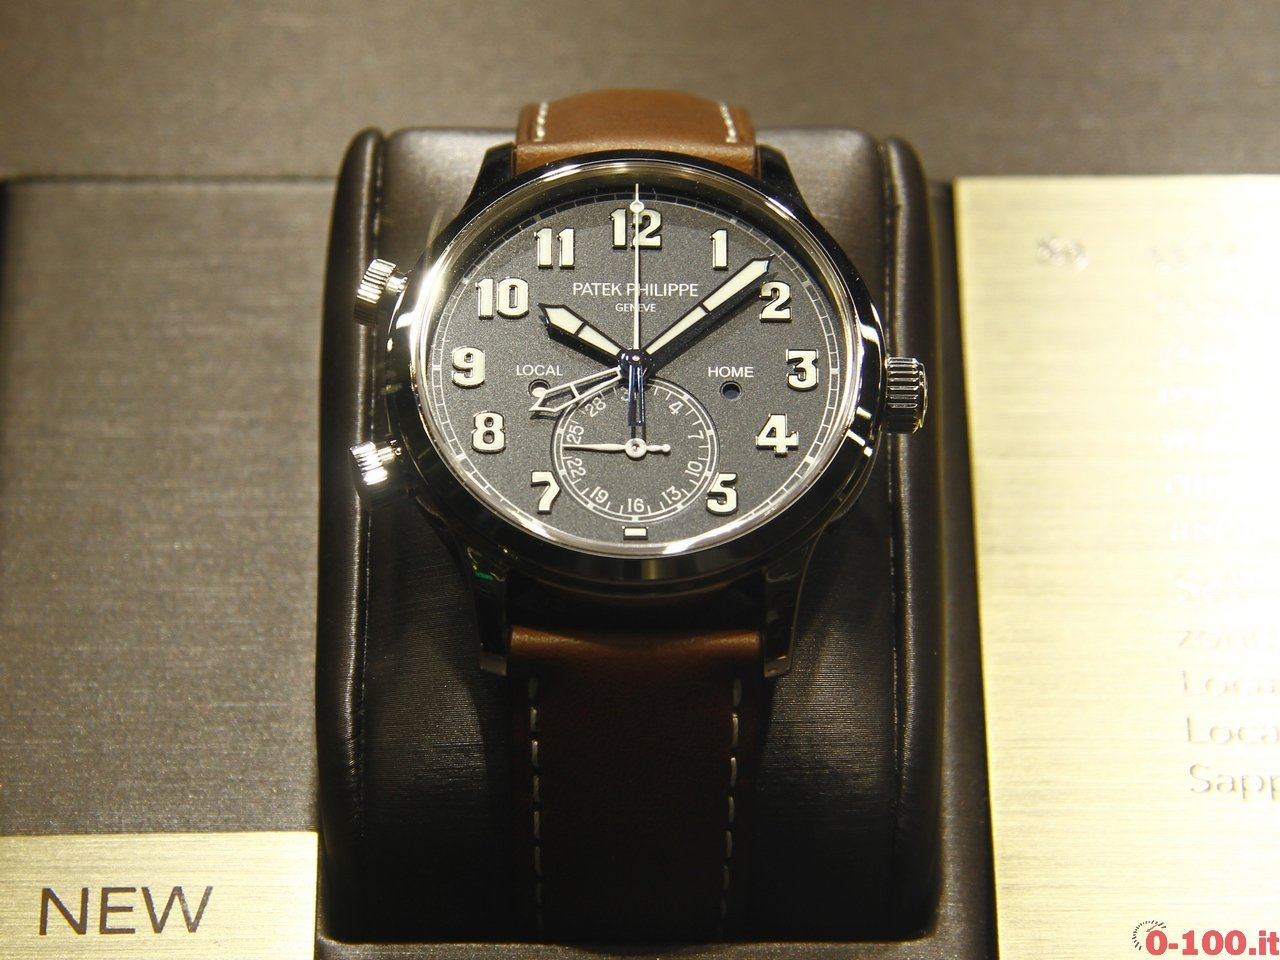 baselworld-2015-patek-philippe-calatrava-pilot-travel-time-0-100_7